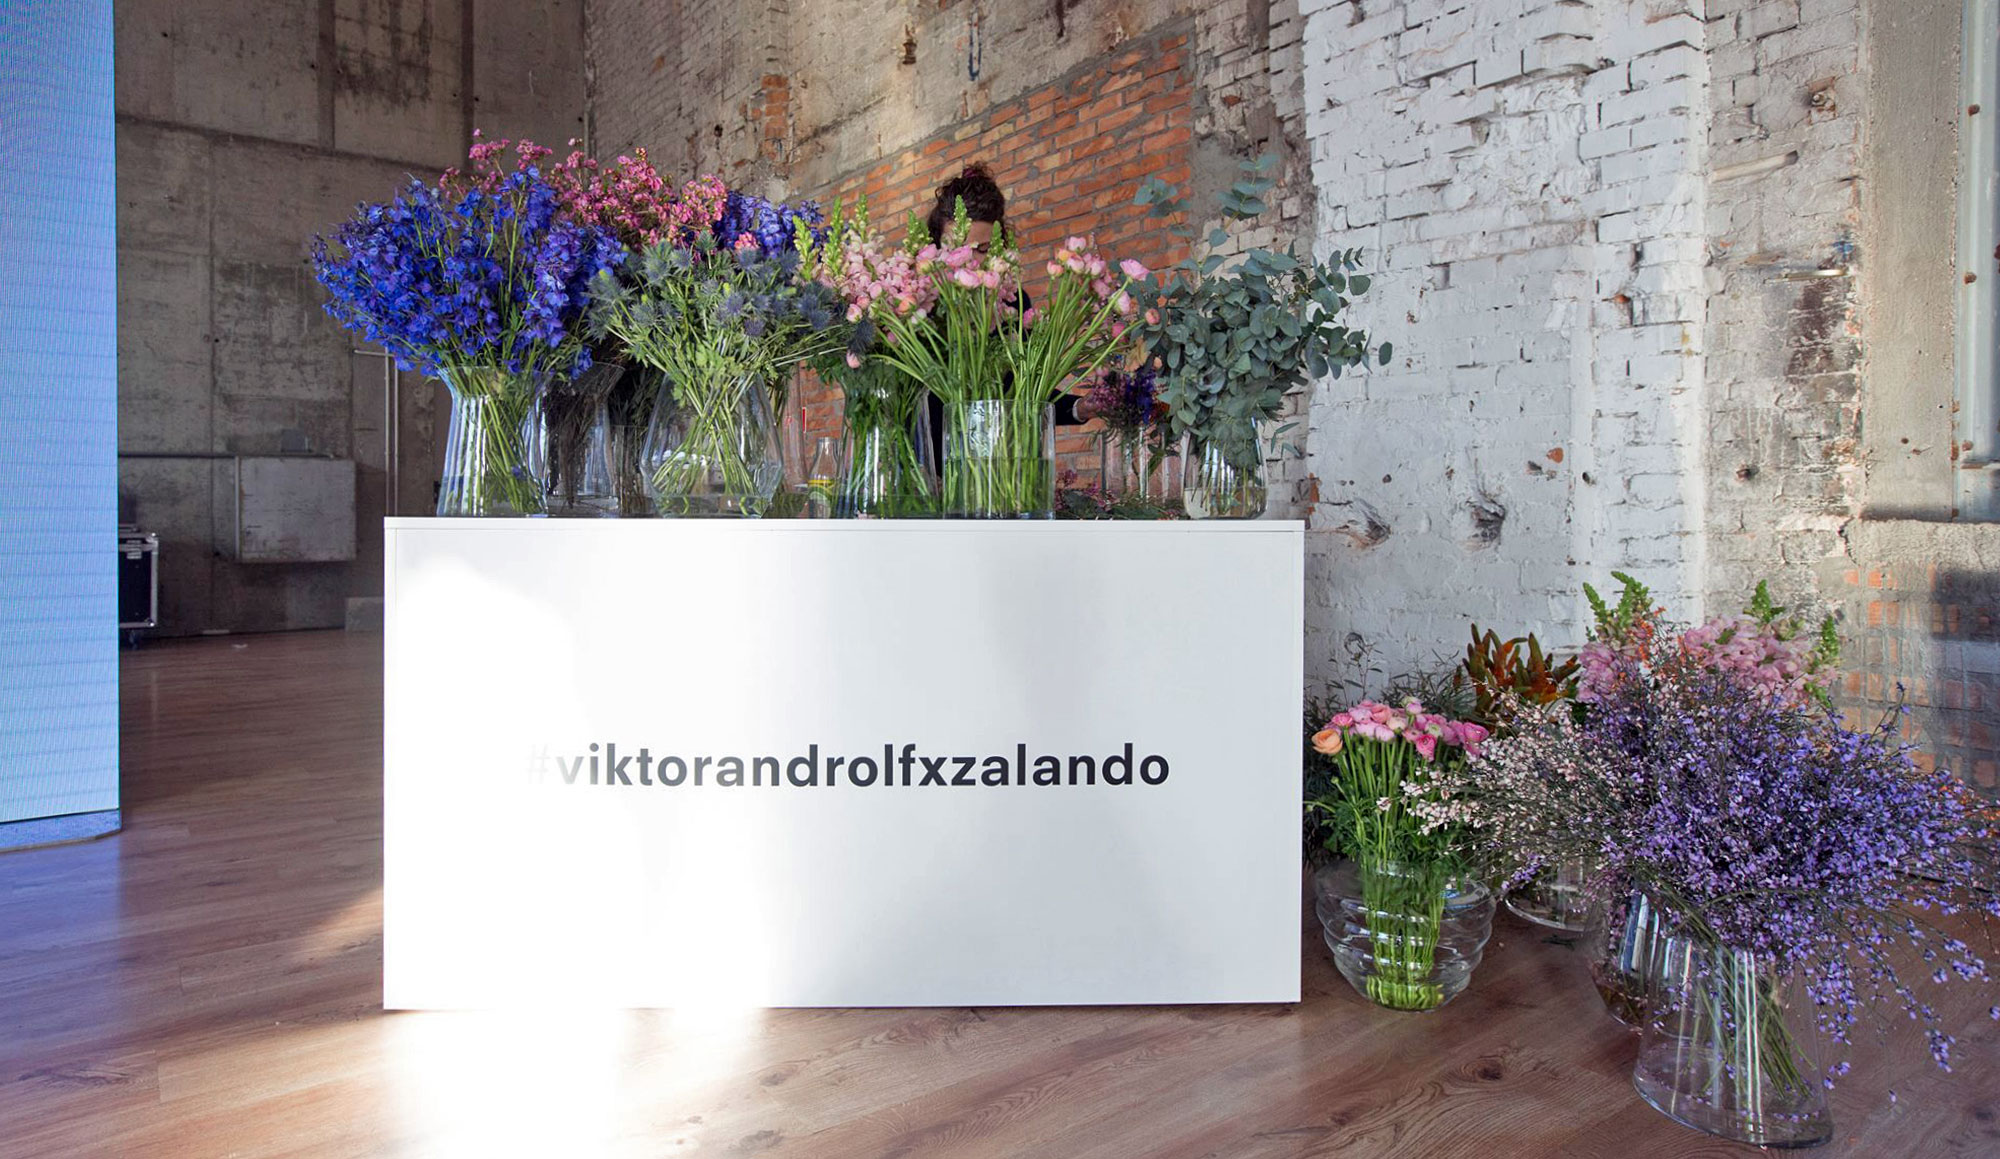 Viktor and Rolf for Zalando